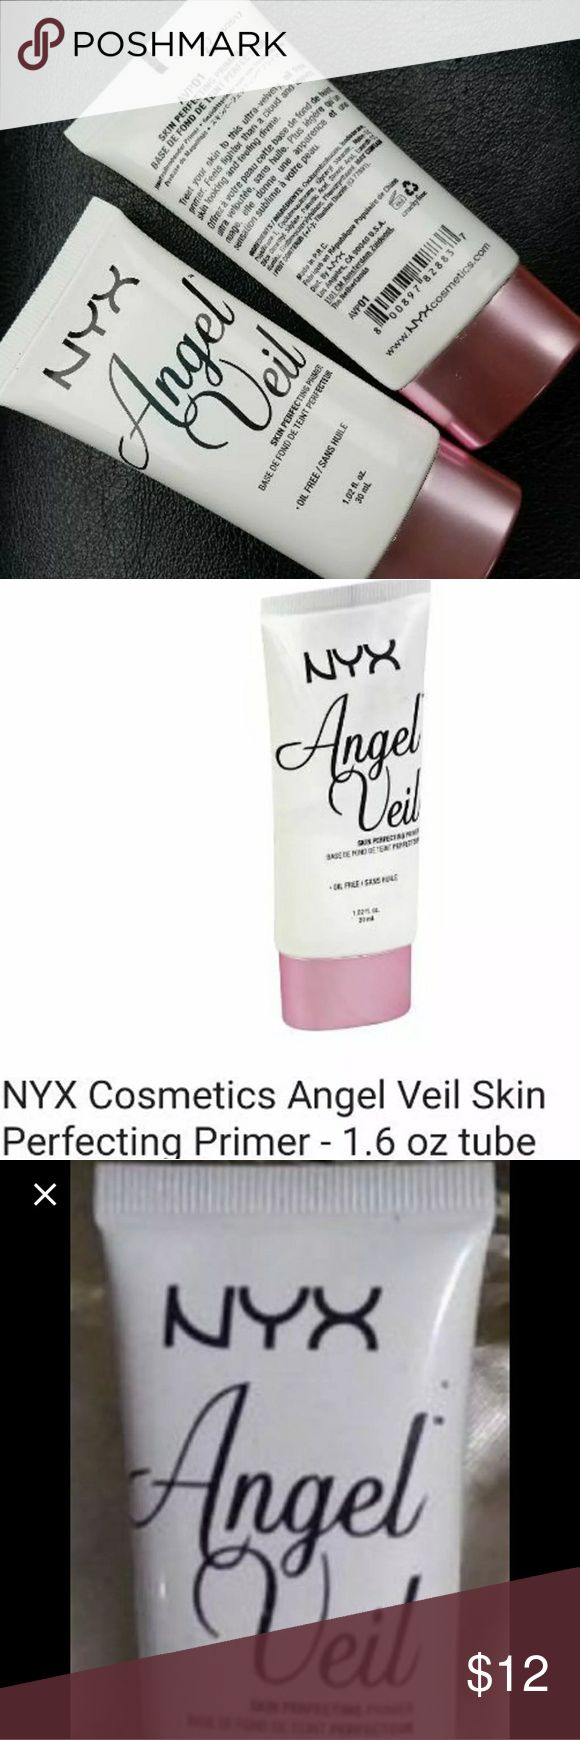 ☆NYX ANGEL VEIL☆ SKIN PERFECTING PRIMER☆ BRAND NEW ♡ ANGEL VEIL ♡ SKIN PERFECTING PRIMER  ♡                                                                  WHAT IT IS~ a velvety smooth primer that creates a uniform canvas.                                                           WHAT IT DOES~ ensures smooth makeup application. WHY YOU'LL LOVE IT~ makes make-up last with a satin smooth finish. NYX Cosmetics Makeup Face Primer